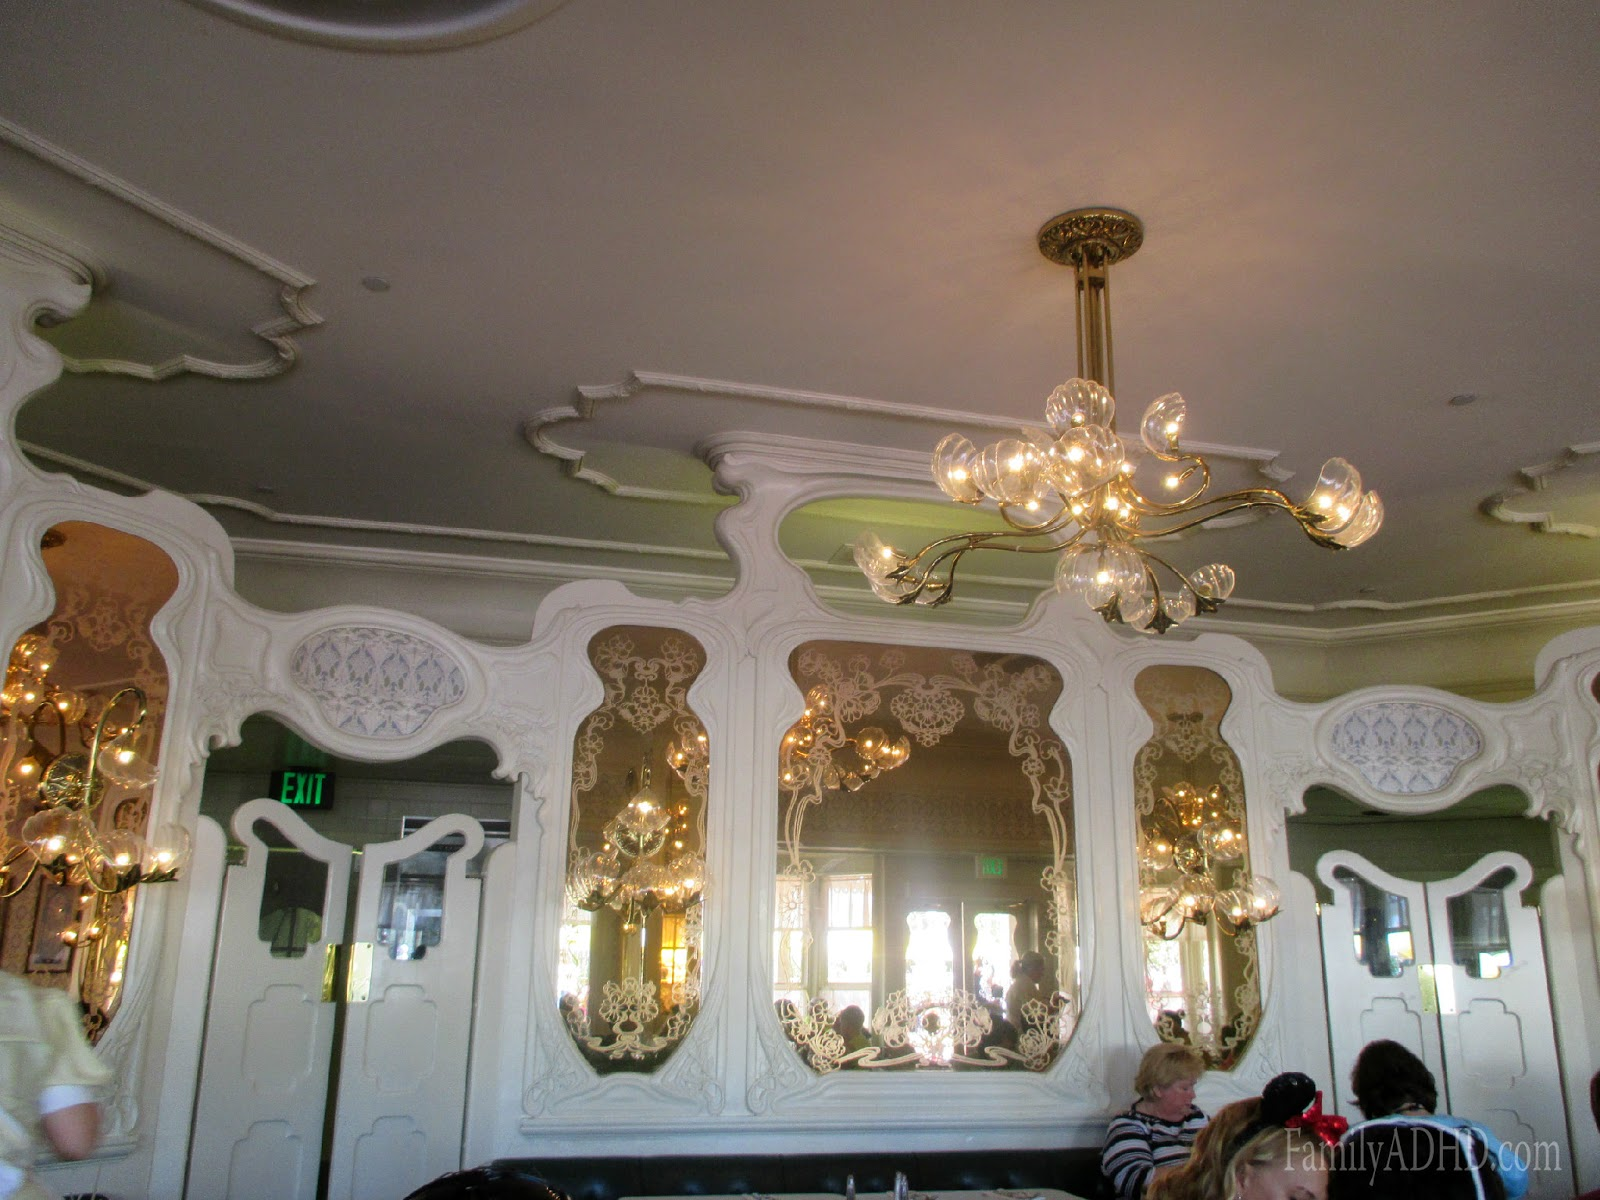 orlando family travel guide 2015 the plaza restaurant review & tips